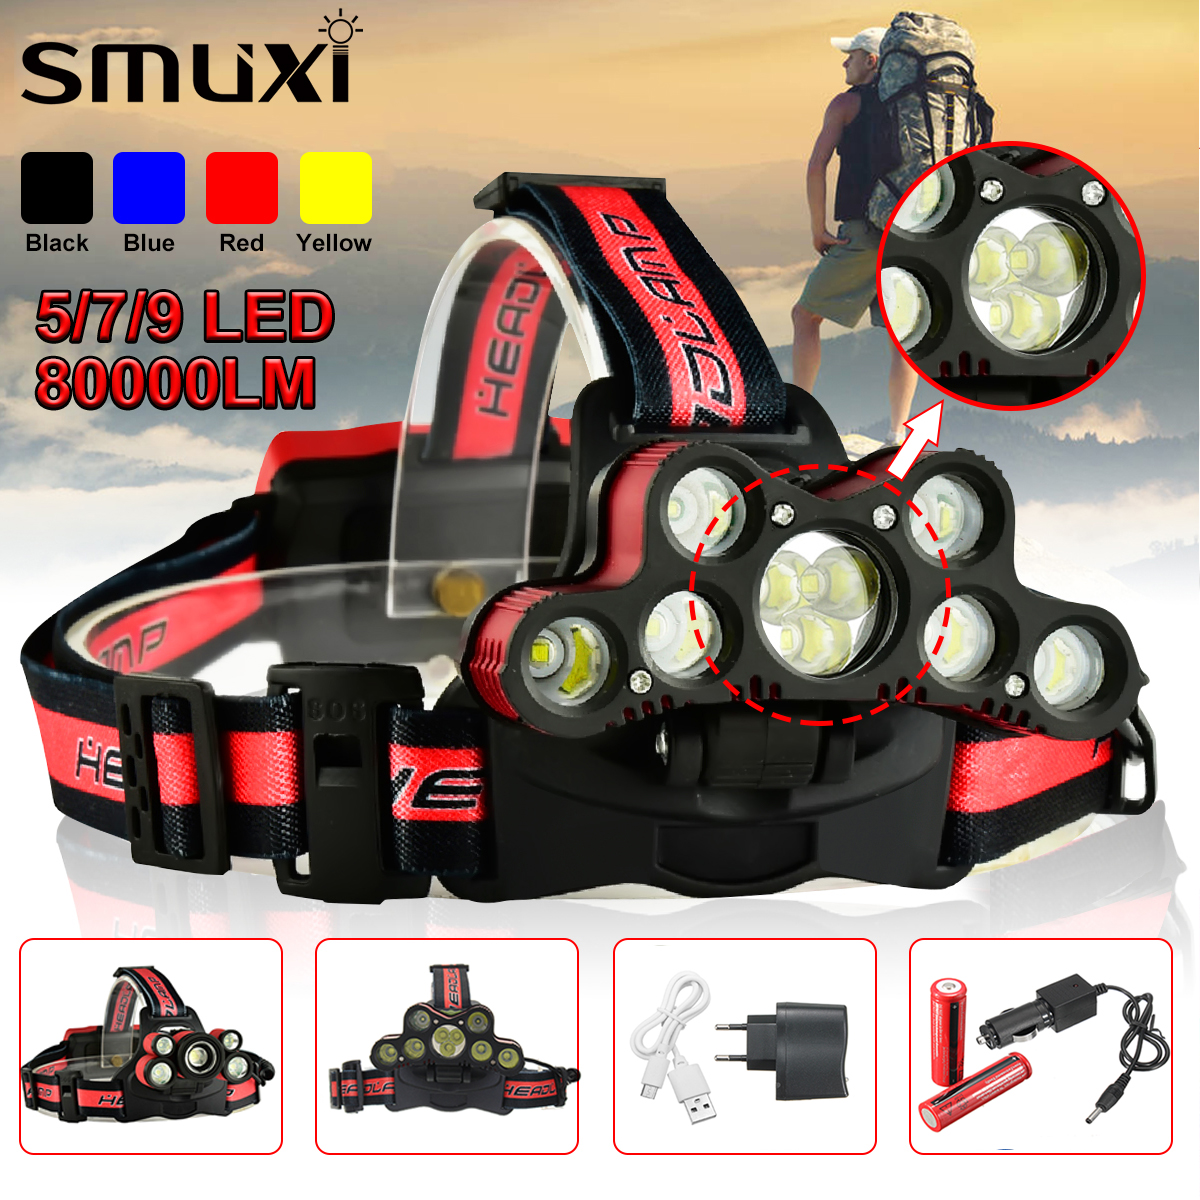 LED Headlamp 80000LM 5/7/9 LED T6 Headlight Head Flashlight Torch Forehead USB Rechargeable 18650 Head Lamp Fishing Headlight 12pcs lot hunting friends super bright led headlamp rechargeable flashlight forehead waterproof headlight head flashlight torch